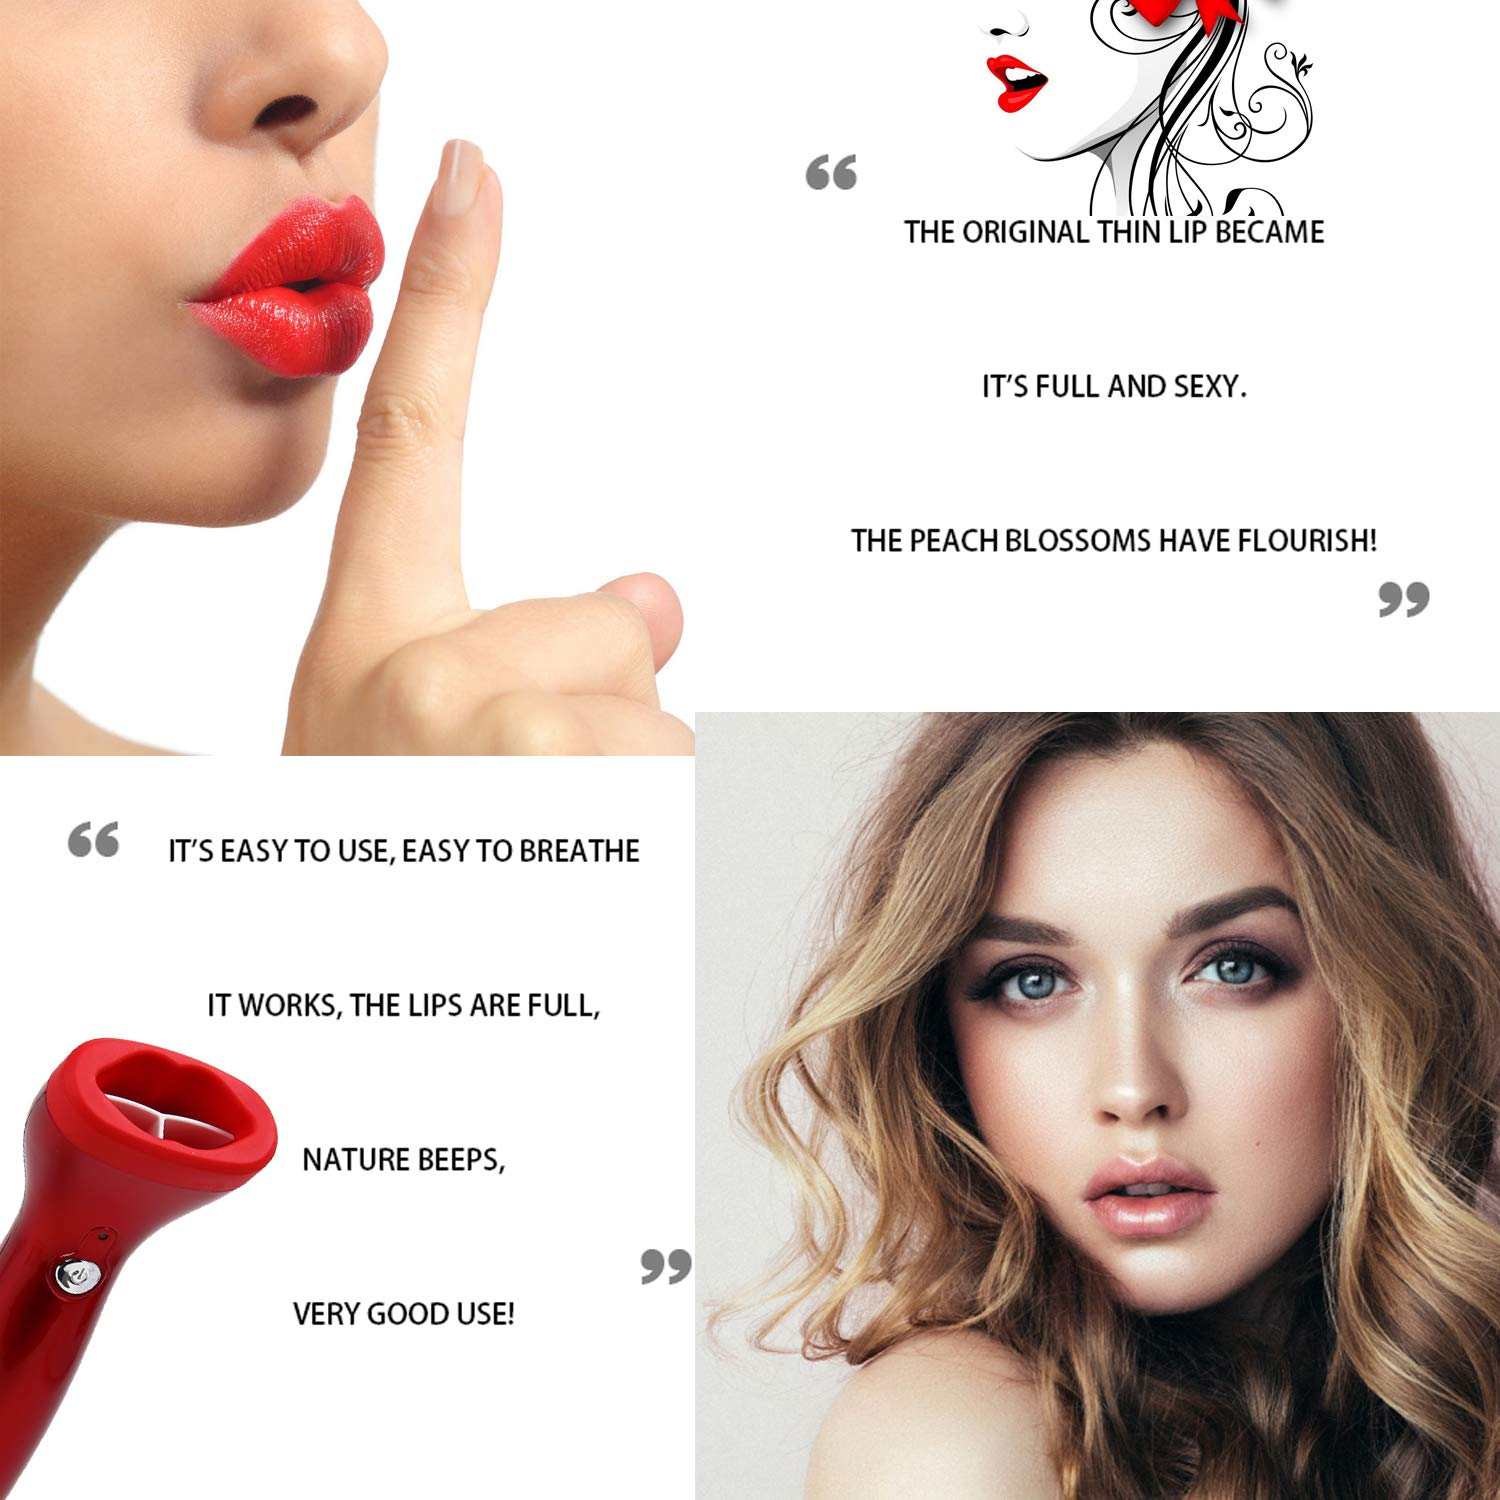 Red Electric Lip Plumper Automatic Lip Plumpering Device 3 Suction Power Type Lip Thicker Tool by Aldalife (Image #6)